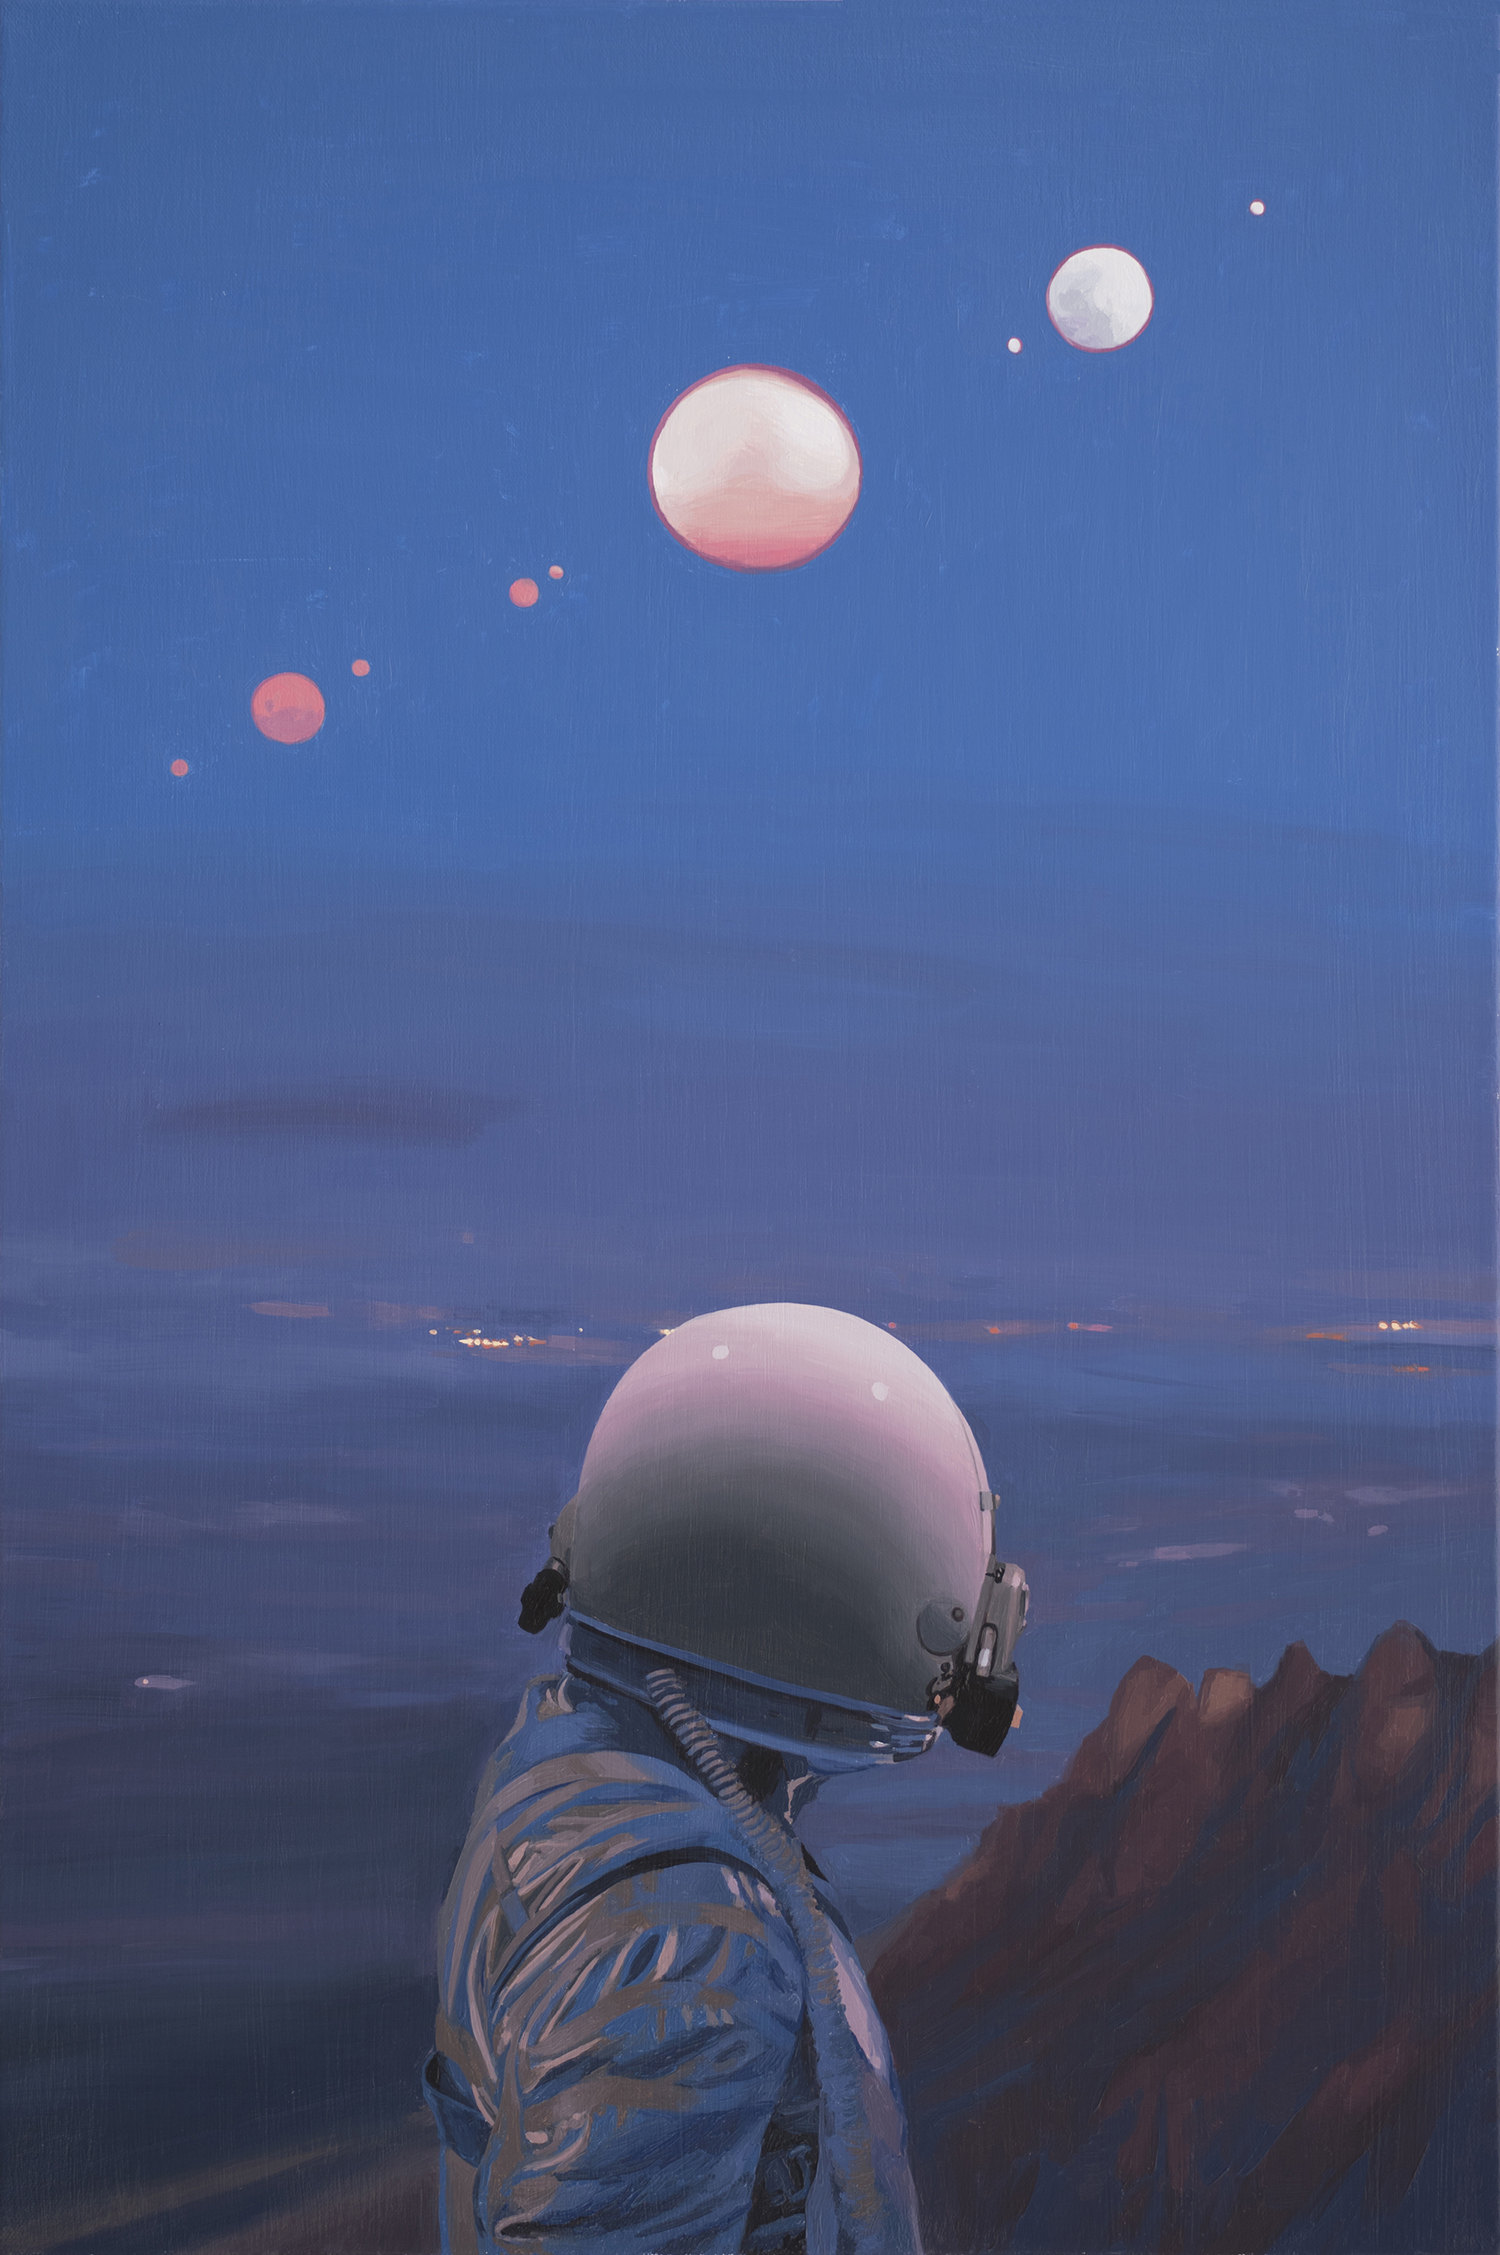 moons, astronaut looking over clift